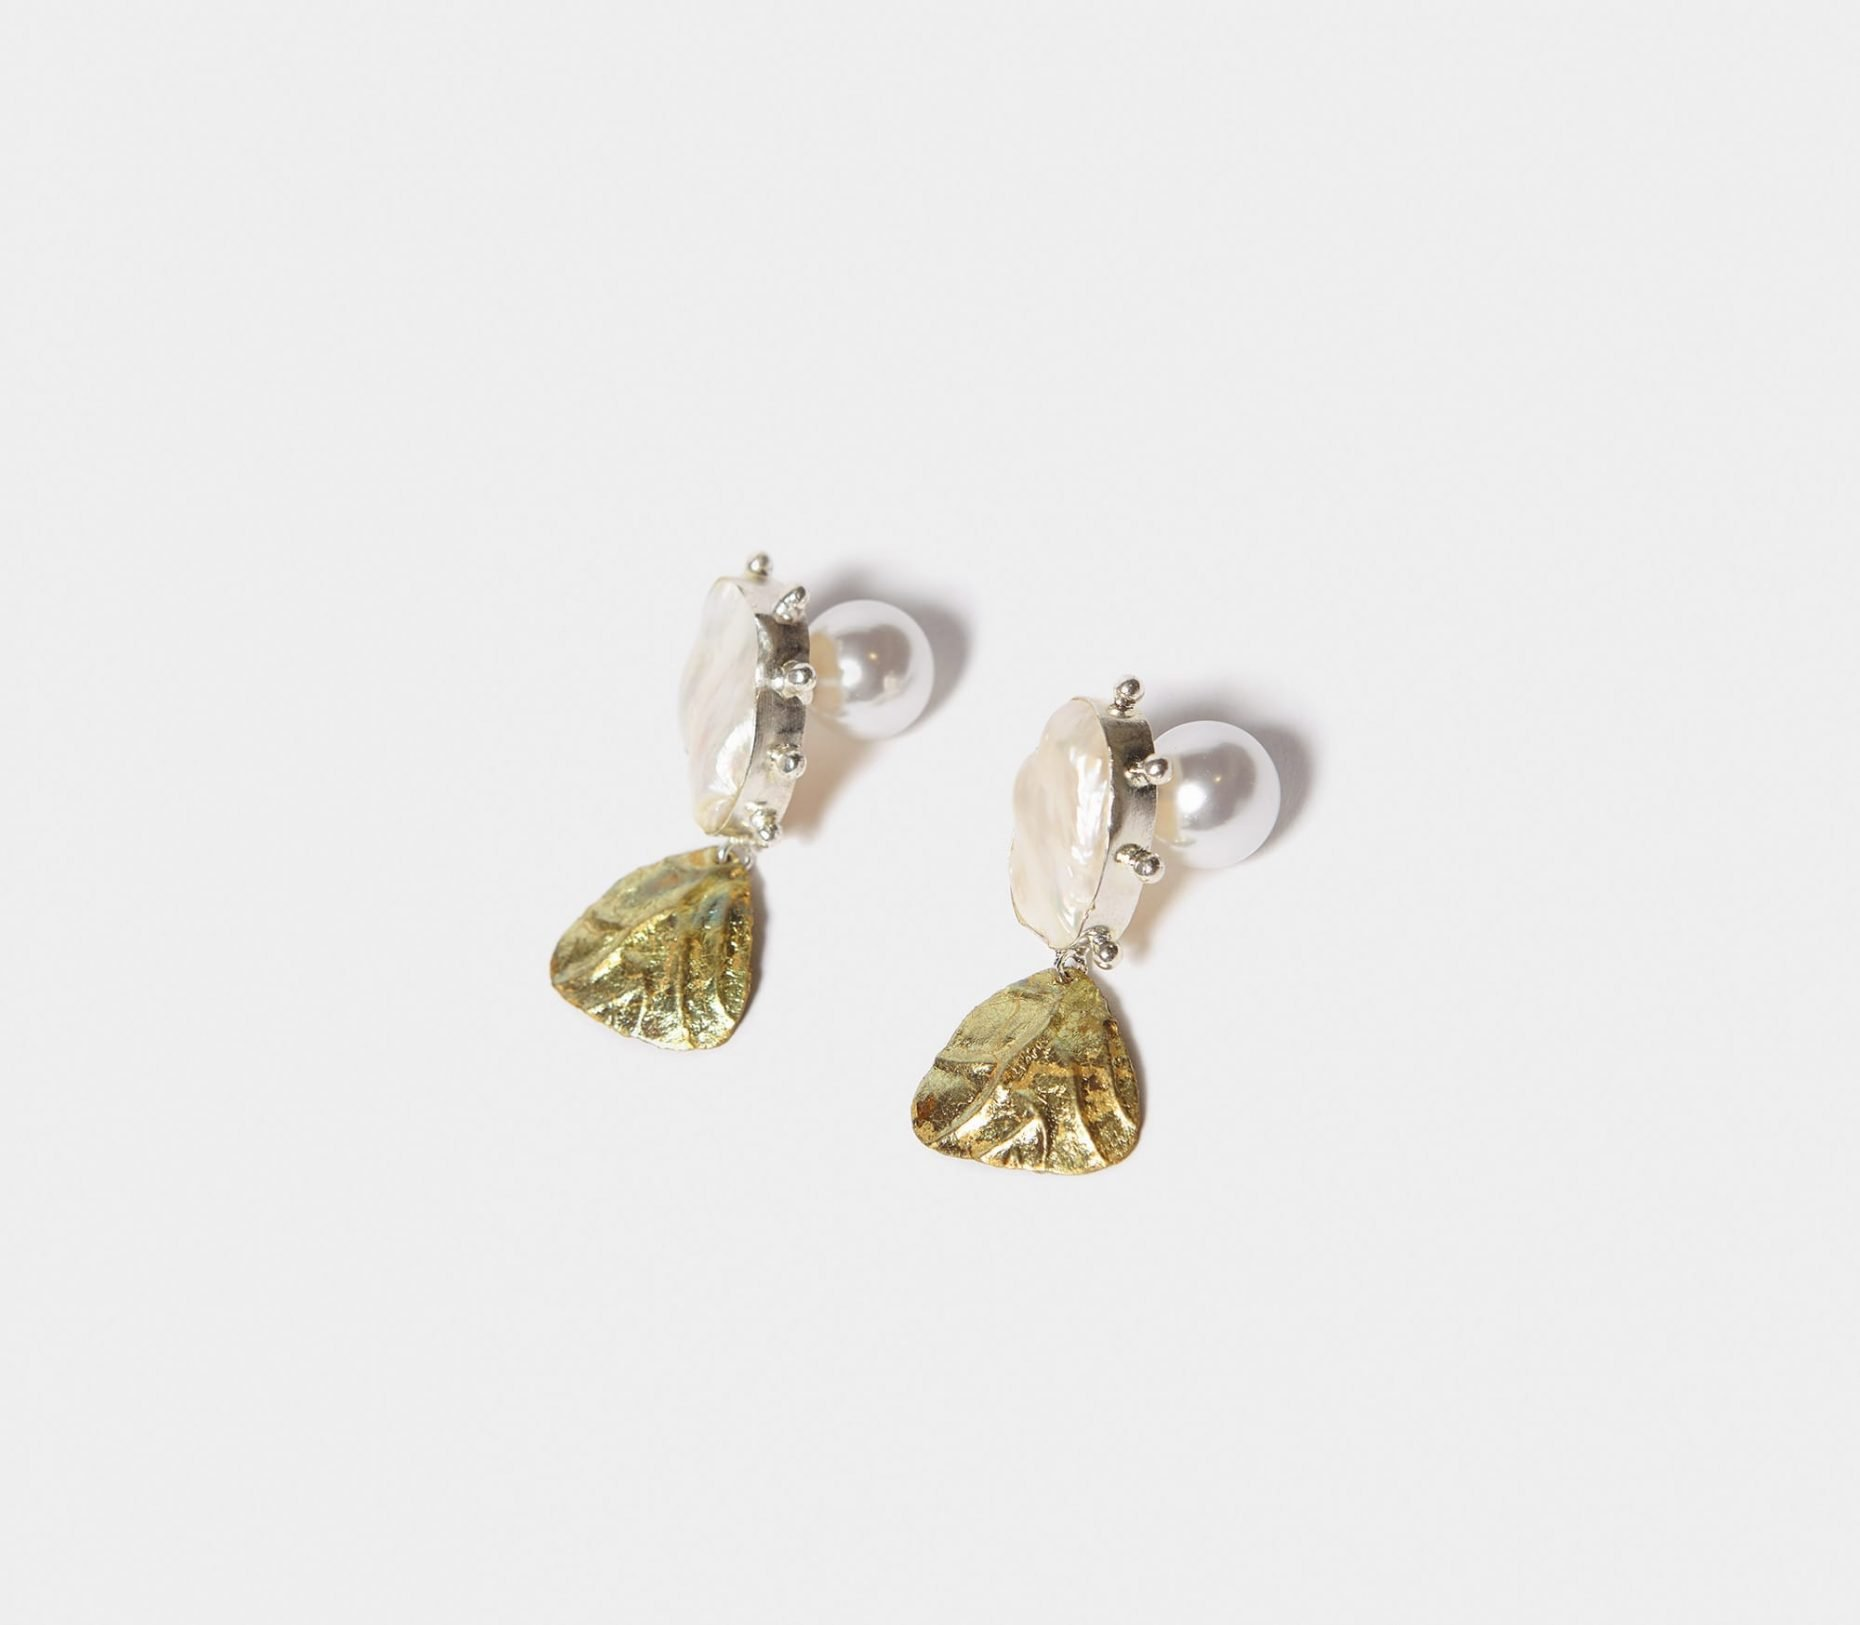 Peet Dullaert Trigon Earrings